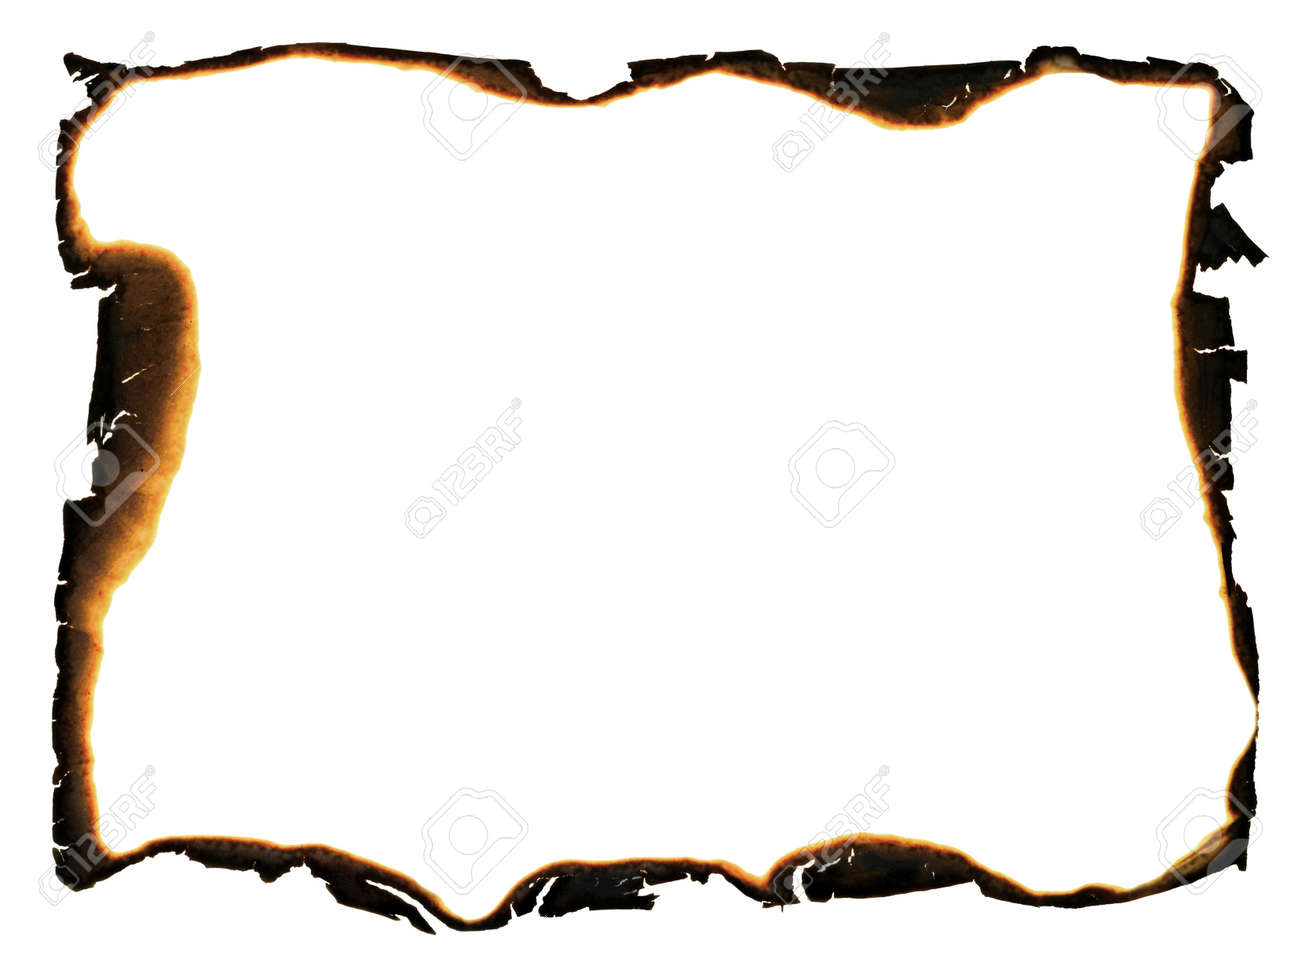 grunge frame with charred and ragged edges Stock Photo - 6368854